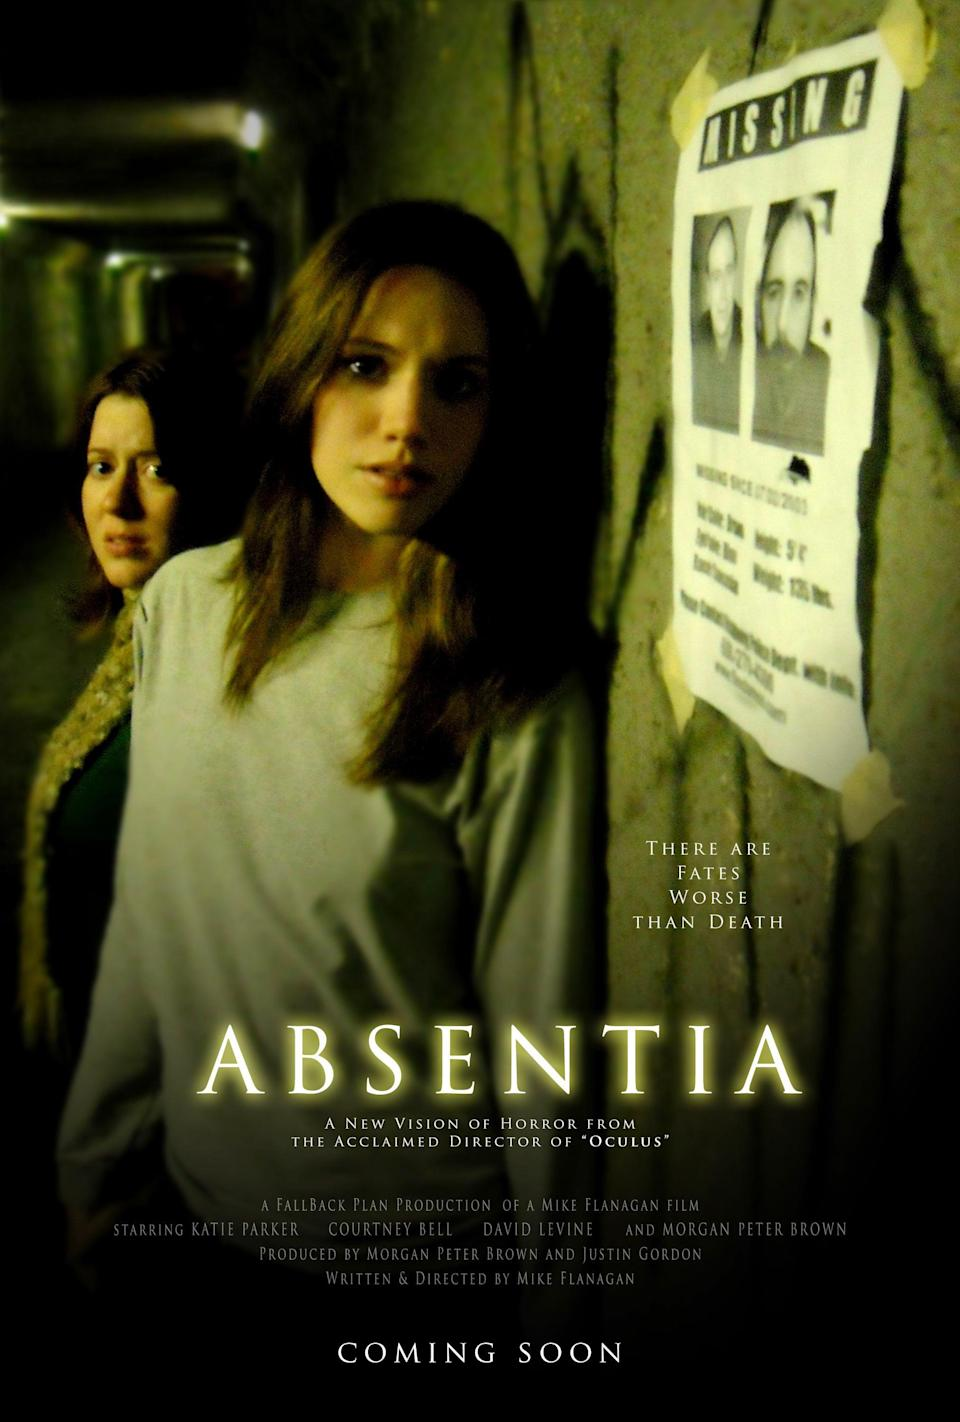 """<p>This film revolves around two sisters who discover a secret tunnel linked to over 100 disappearances in the area, including that of one sister's husband. It's a terrifying missing-person story that ties in supernatural and true crime elements. Plus, critics were obsessed with it - one called it a <a href=""""https://variety.com/2011/film/reviews/absentia-1117945387/"""" class=""""link rapid-noclick-resp"""" rel=""""nofollow noopener"""" target=""""_blank"""" data-ylk=""""slk:&quot;very creepy, non-formulaic&quot; film."""">""""very creepy, non-formulaic"""" film.</a></p> <p><a href=""""https://www.amazon.com/gp/video/detail/amzn1.dv.gti.a8a9f751-0b0f-82e8-304d-ecdfa4052d09?autoplay=1&amp;ref_=atv_cf_strg_wb"""" class=""""link rapid-noclick-resp"""" rel=""""nofollow noopener"""" target=""""_blank"""" data-ylk=""""slk:Watch Absentia on Amazon Prime"""">Watch <strong>Absentia</strong> on Amazon Prime</a>.</p>"""